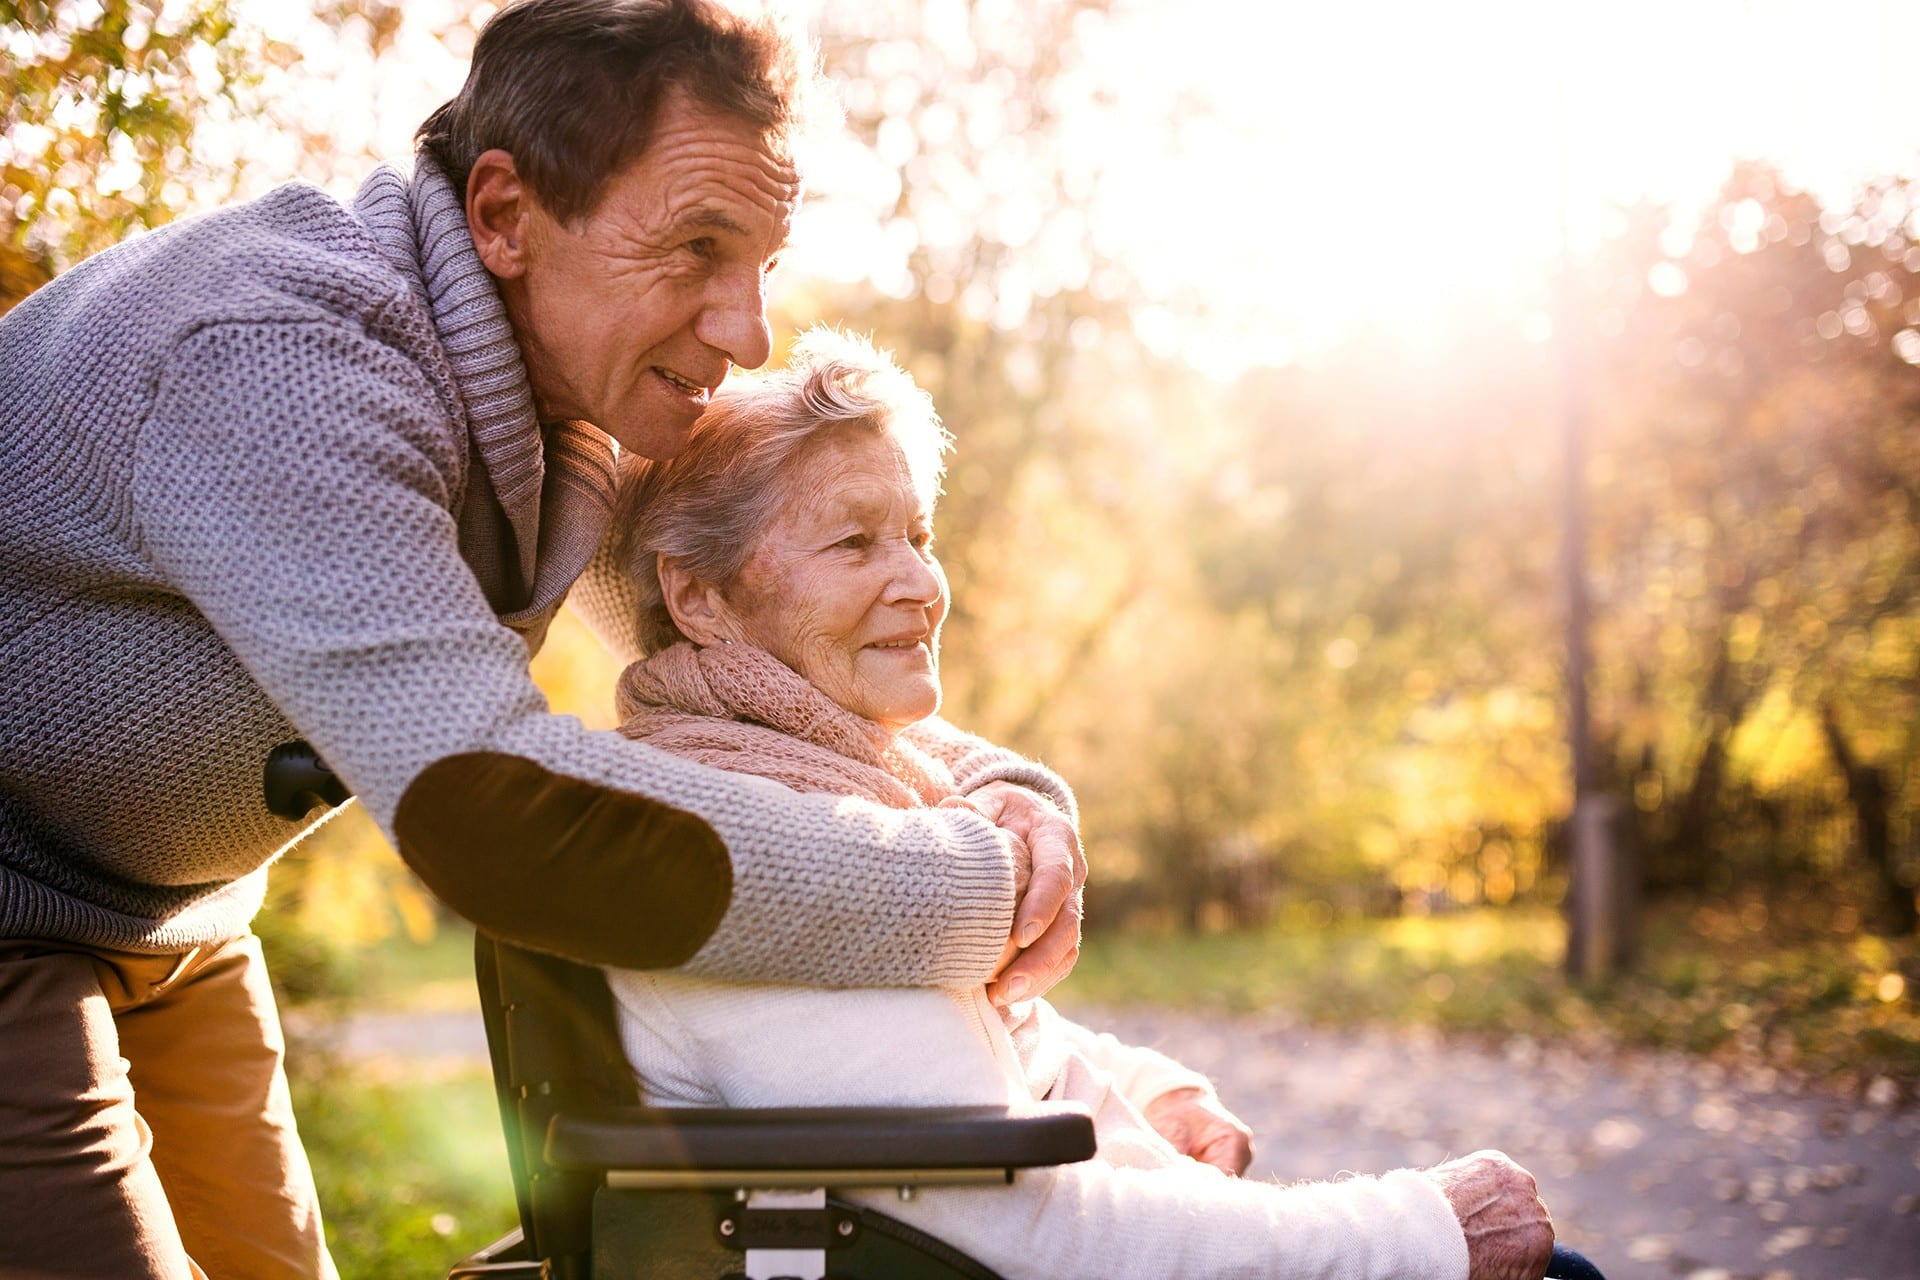 It Is Best to Plan for Possibility of Assisted Living